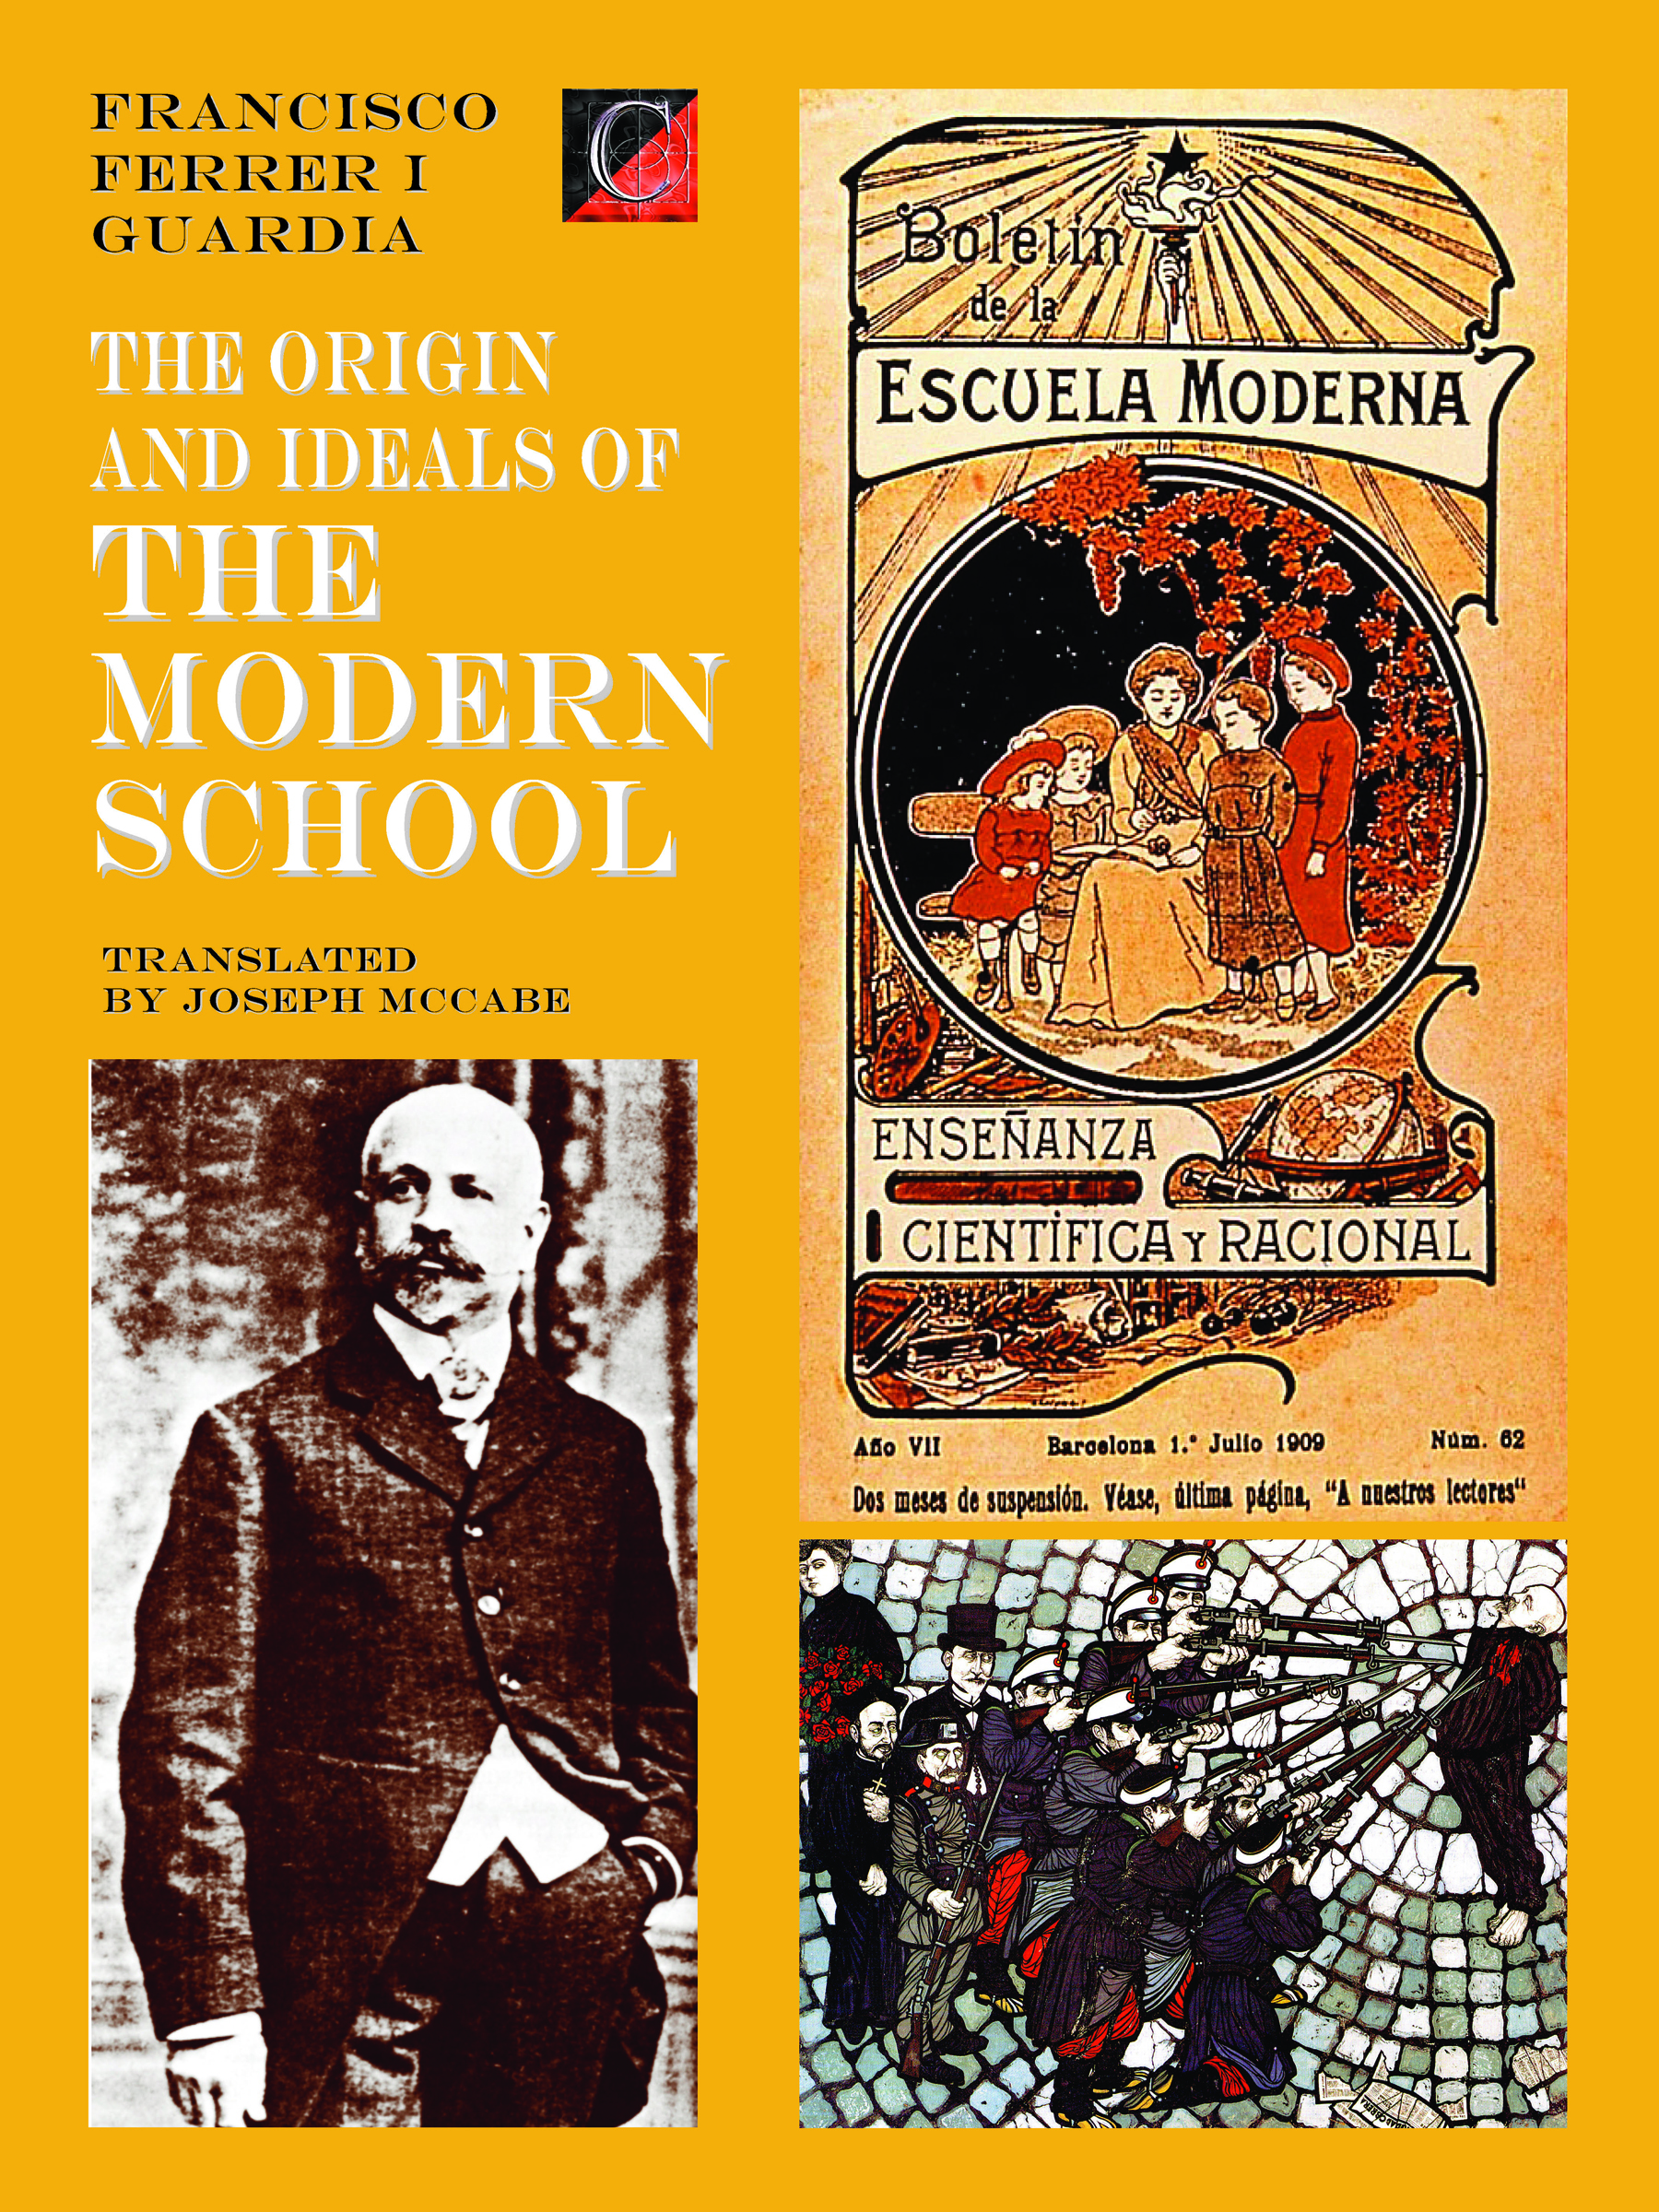 THE ORIGIN AND IDEALS OF THE MODERN SCHOOL — Francisco Ferrer